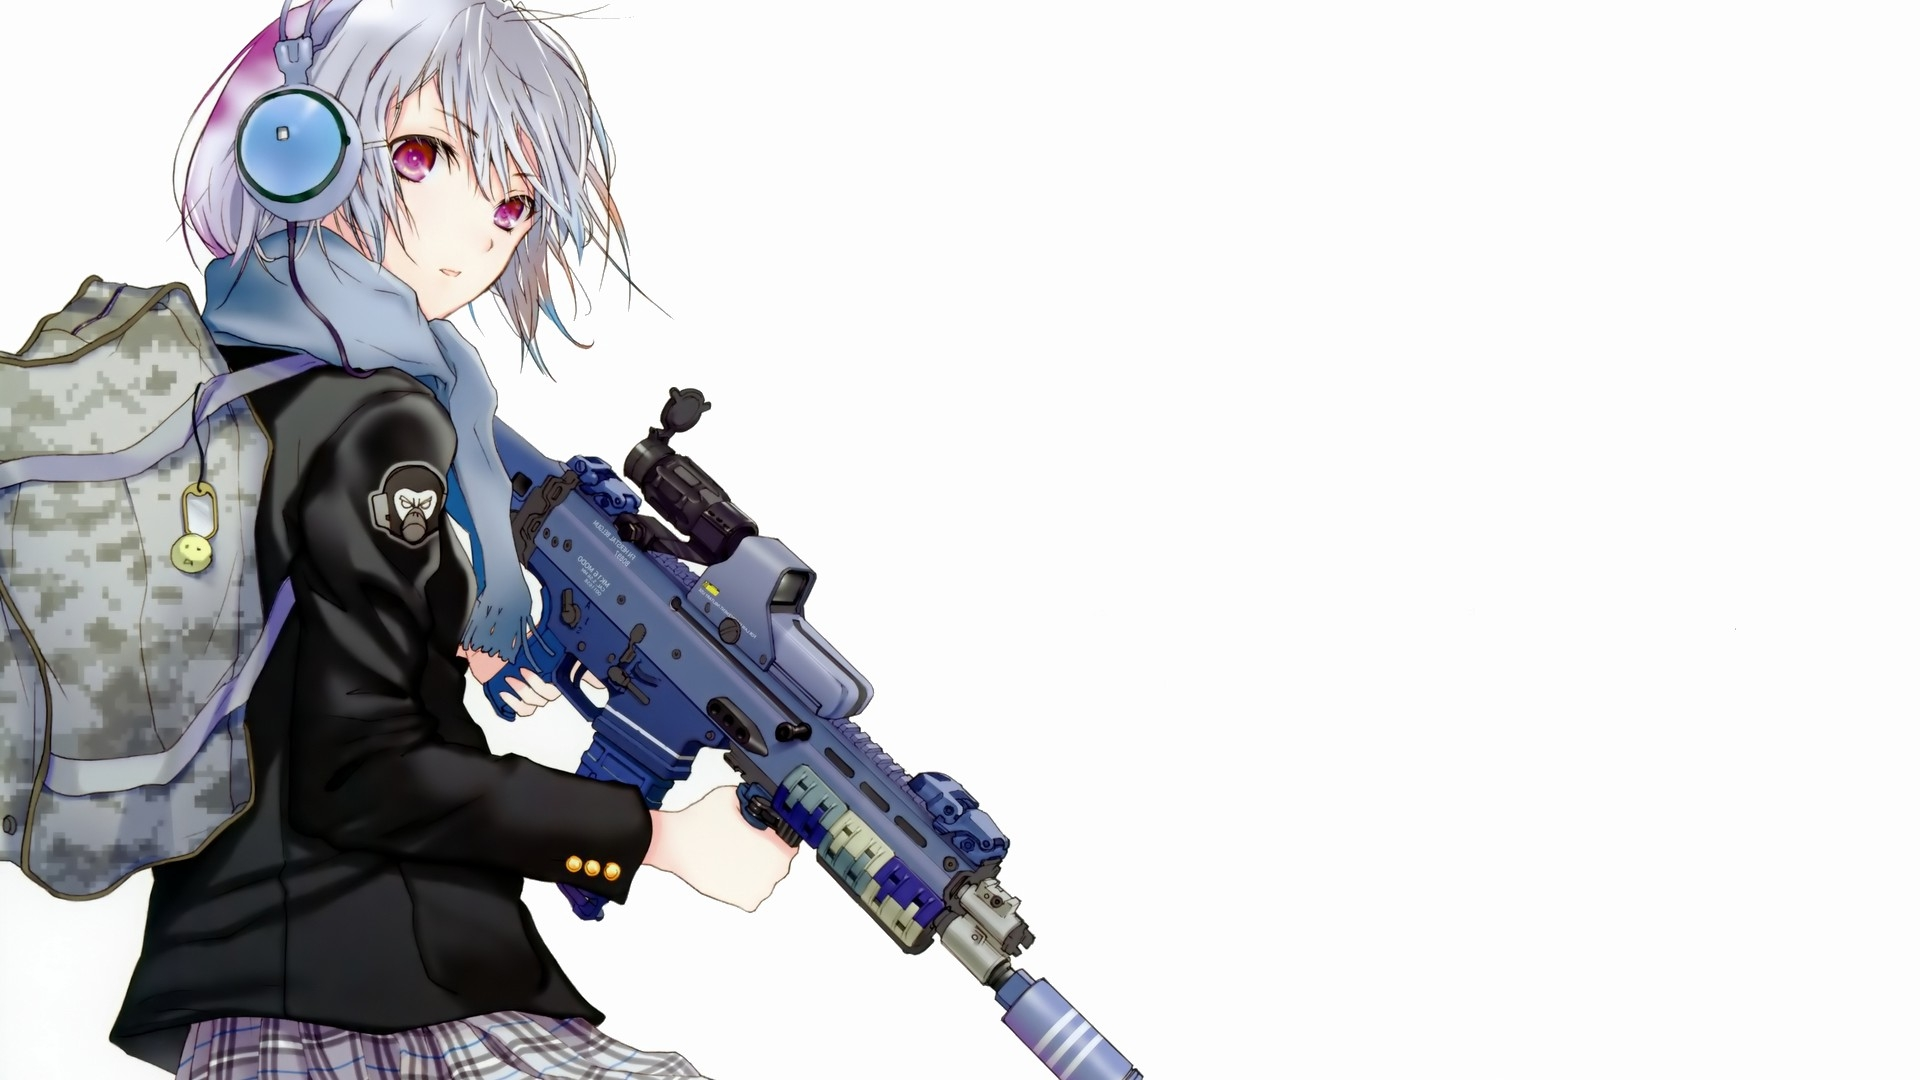 Anime Girl Attitude Backpack Weapons Full HD 1080p HD Background 1920x1080